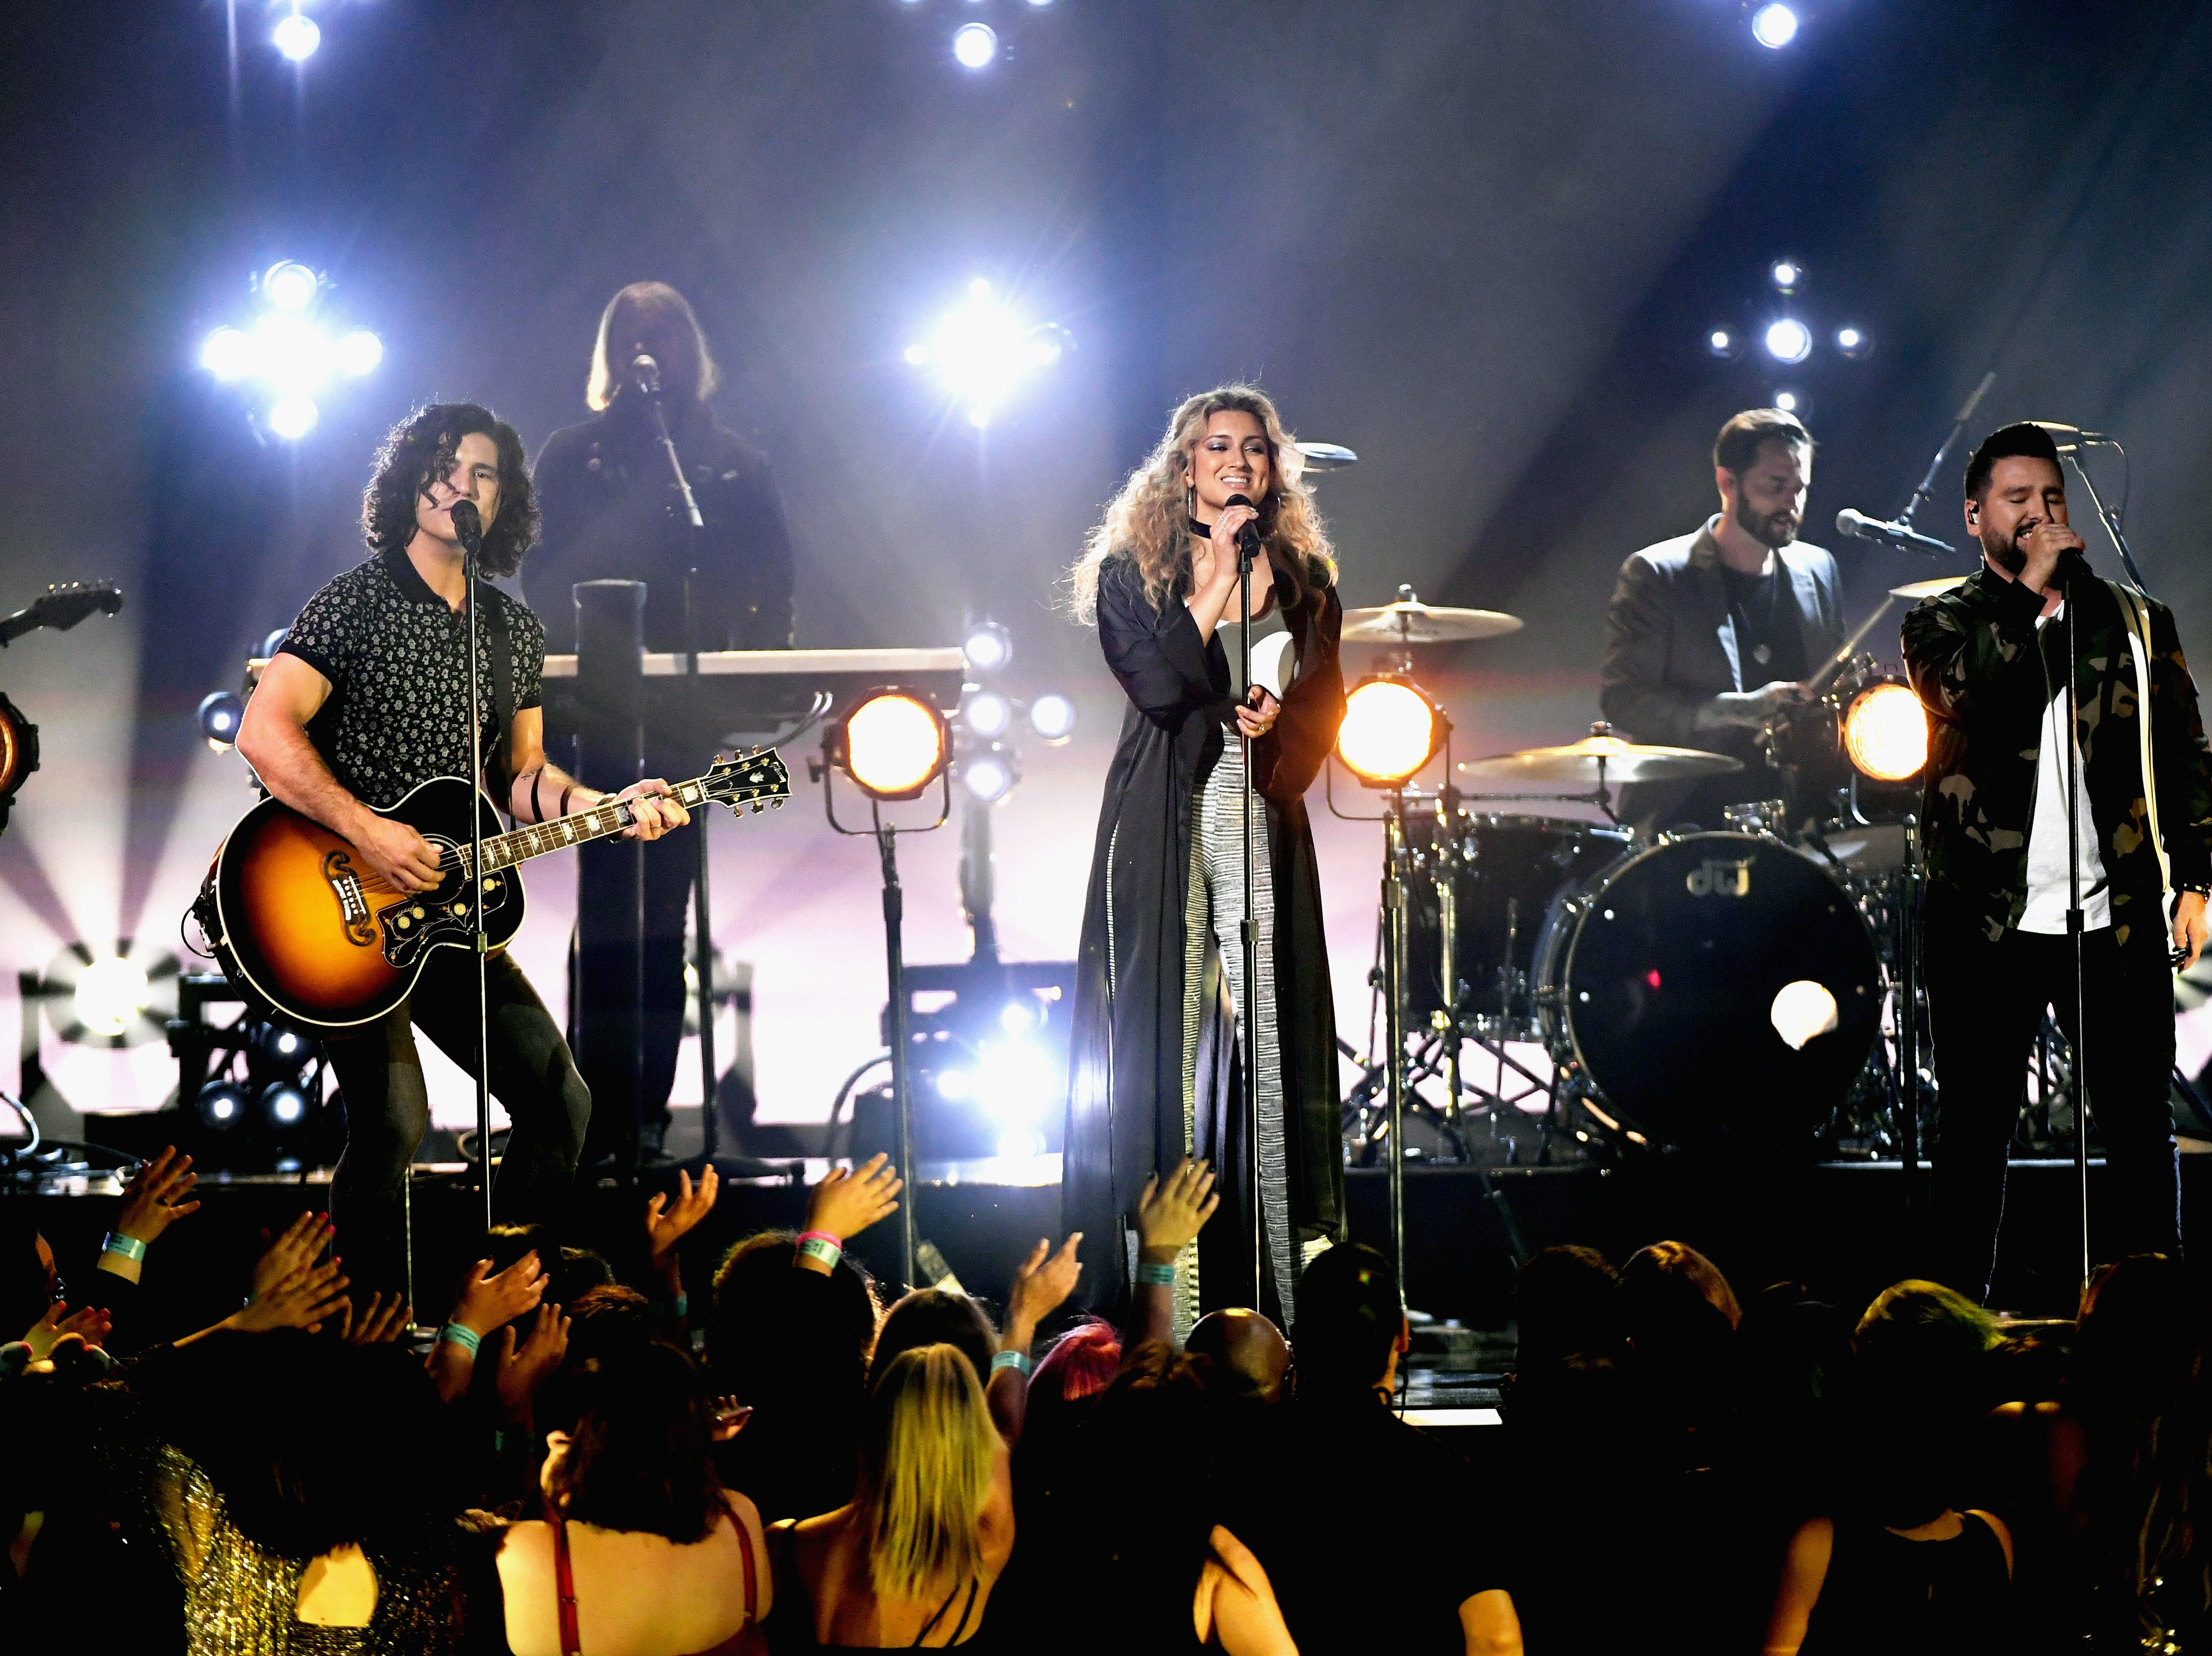 (L-R) Dan Smyers of Dan + Shay, Tori Kelly, and Shay Mooney of Dan + Shay perform onstage during the 2019 Billboard Music Awards at MGM Grand Garden Arena on May 1, 2019 in Las Vegas, Nevada.